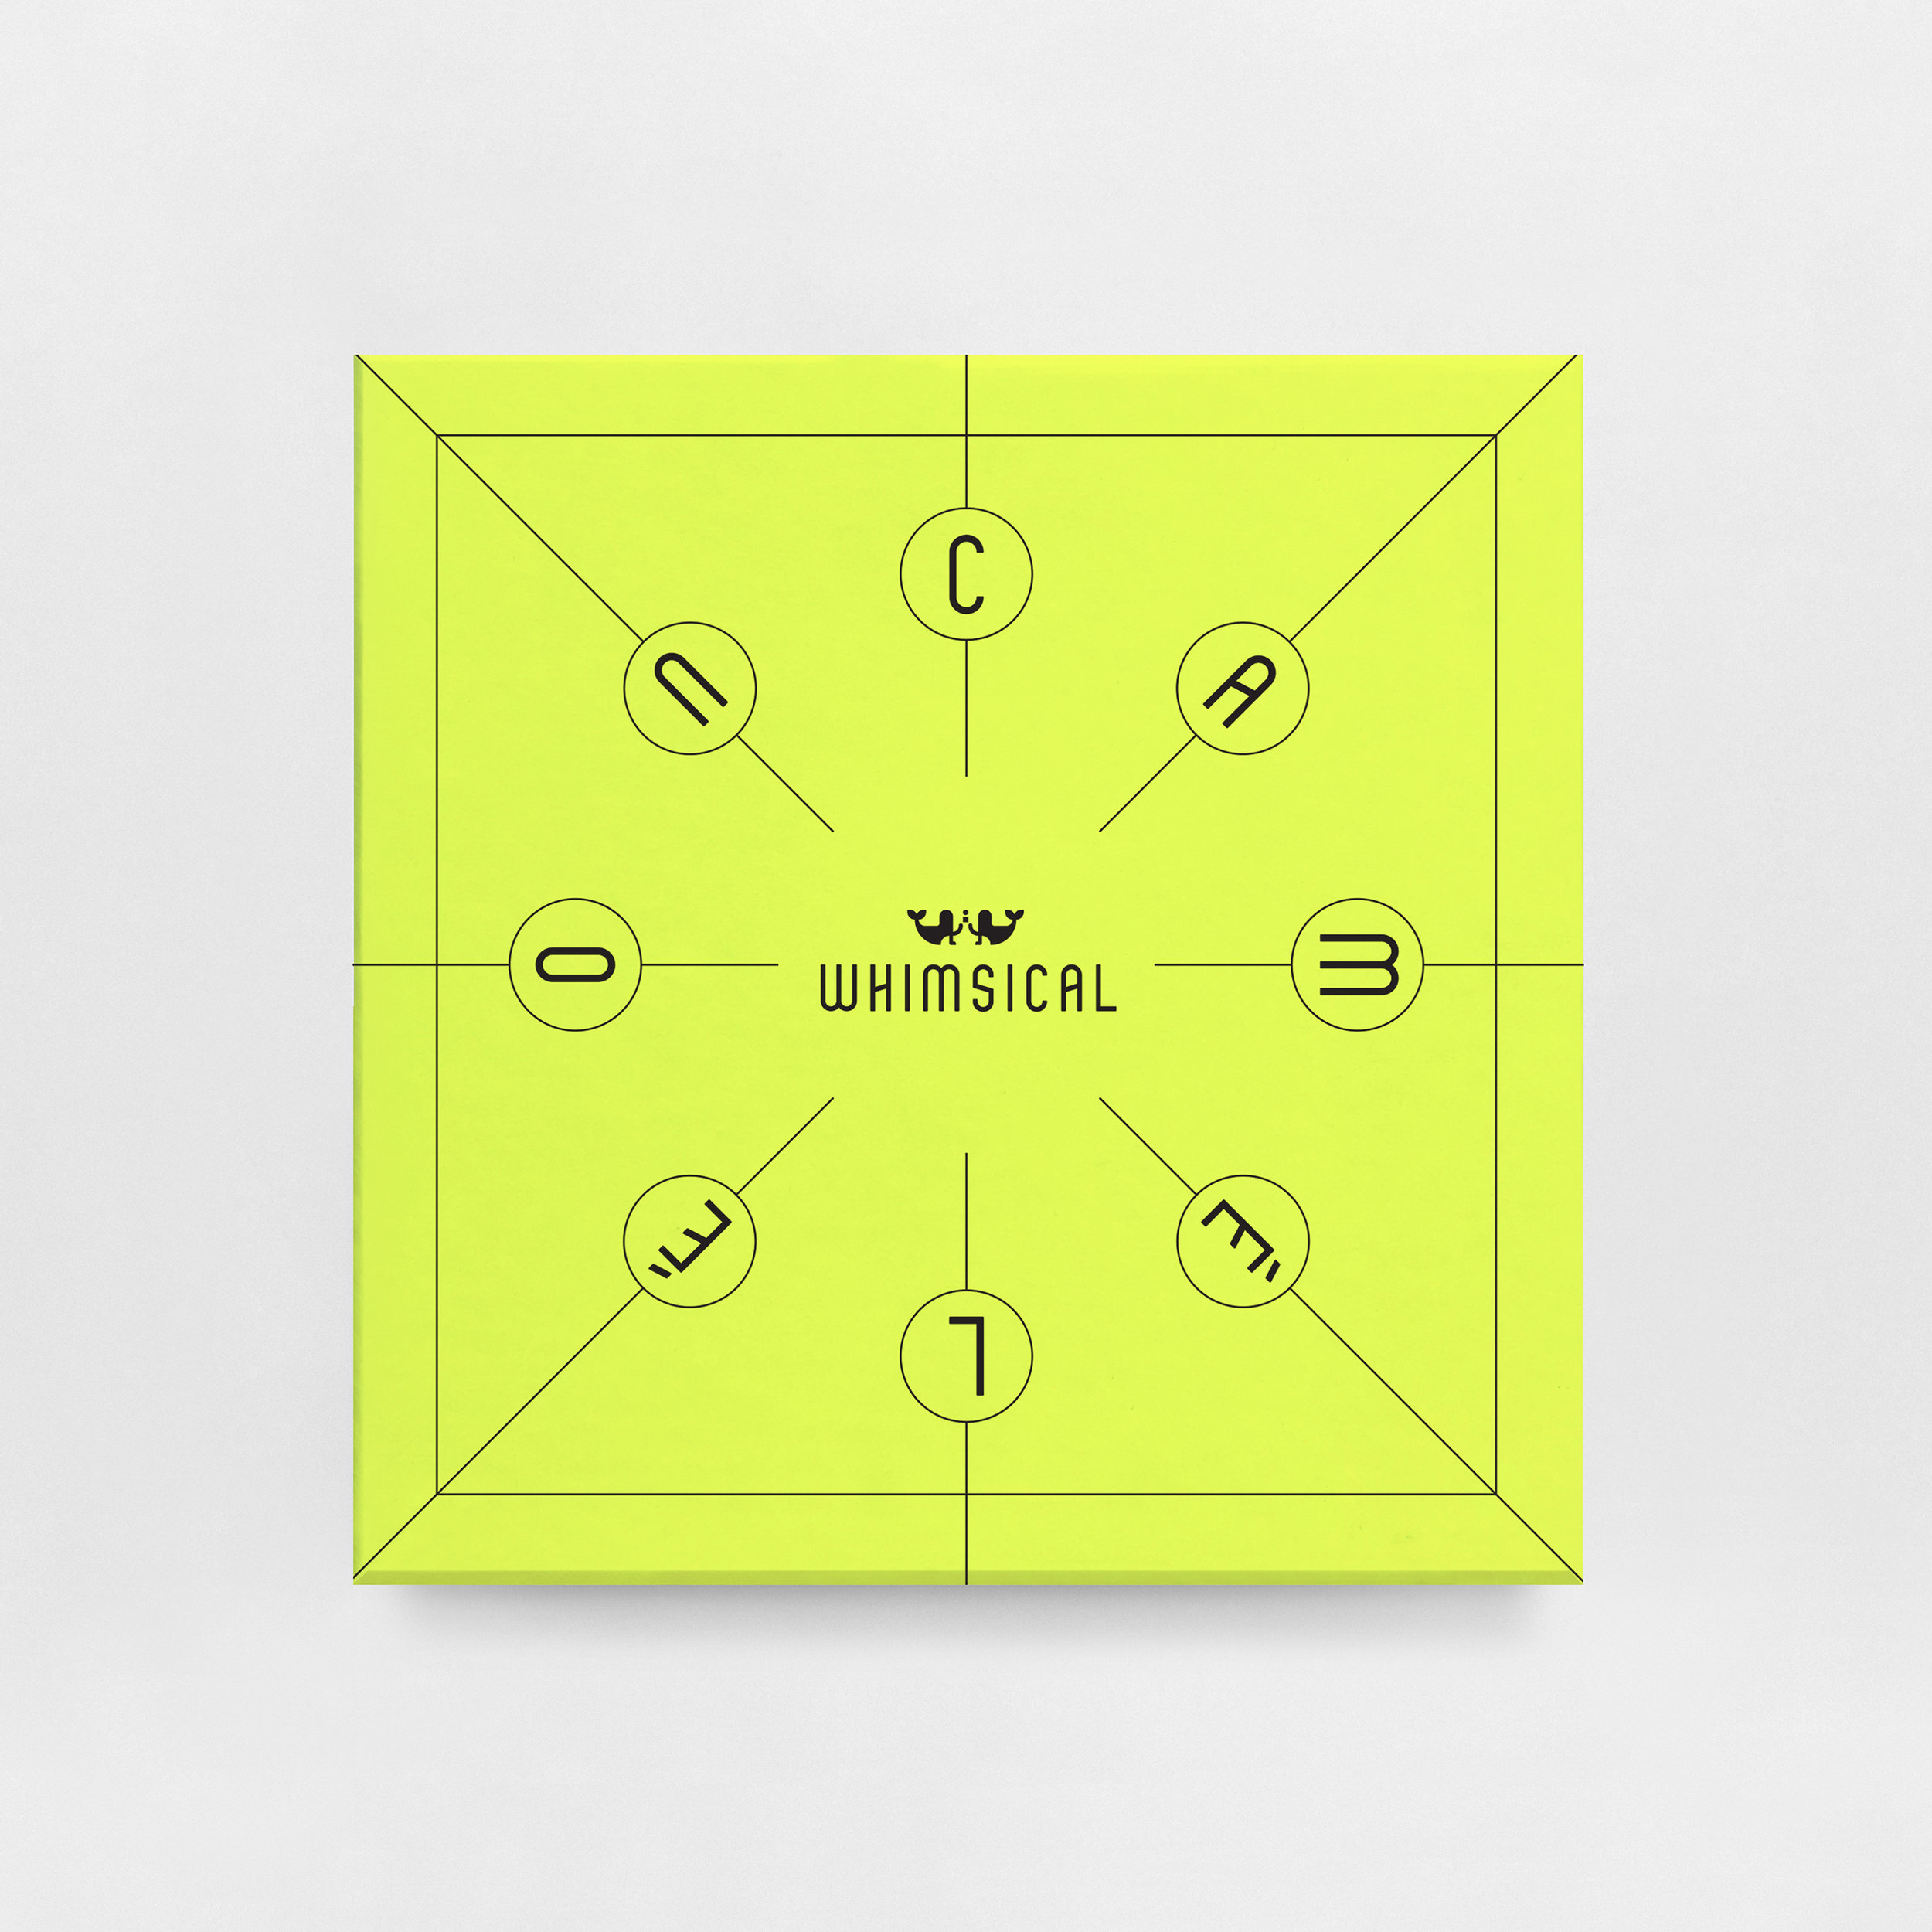 $110 + SHIPPING WHIMSICAL CAMÉLÉON TIC - TAC - TOE | NEON YELLOW